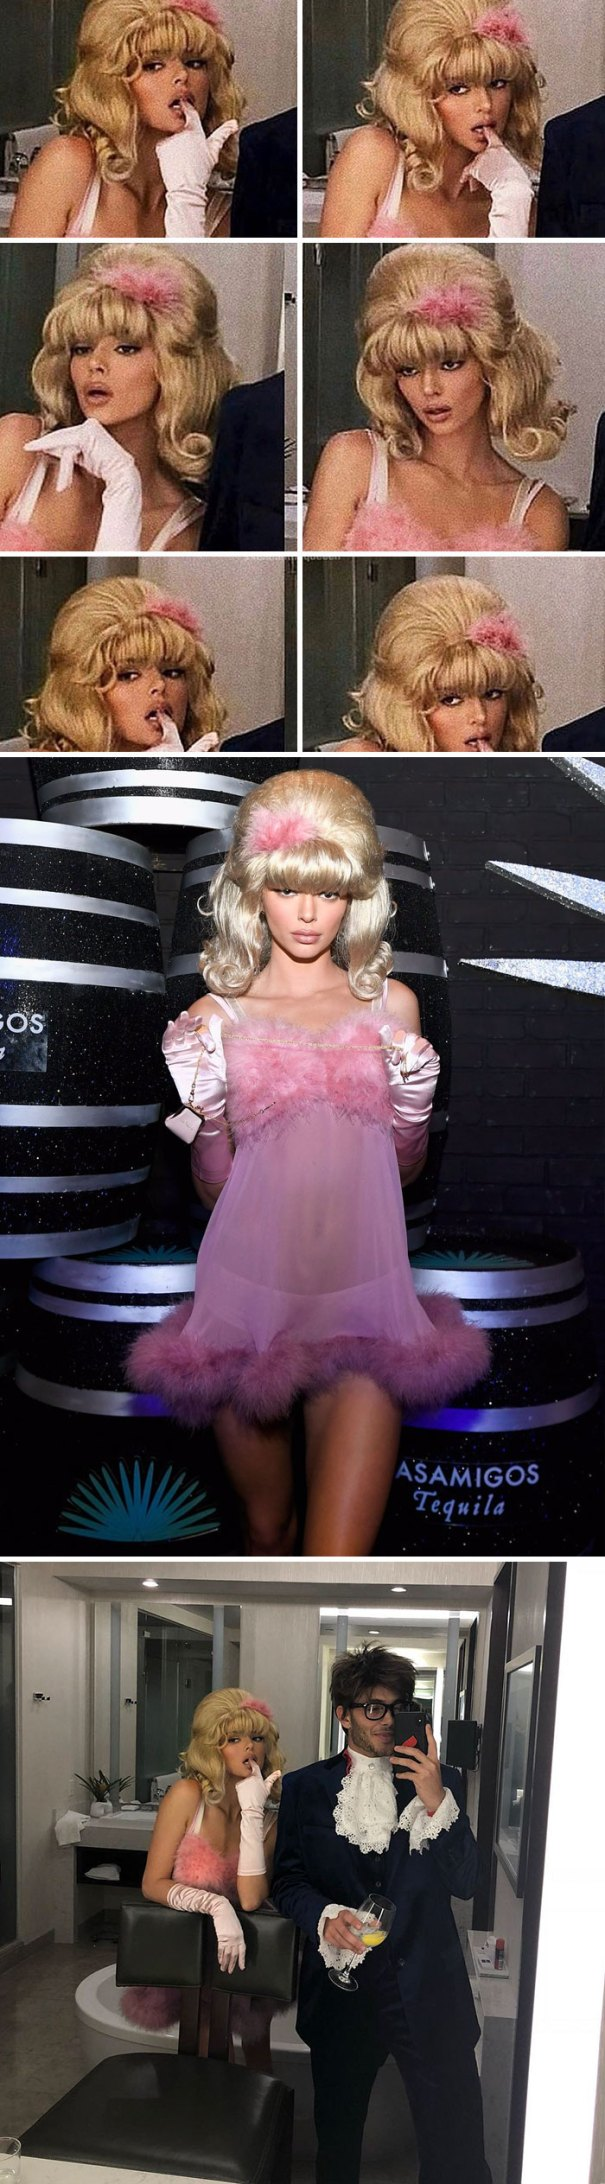 5be0554e75e87-best-celebrity-halloween-costumes-2018-19-5bdc11e11af1f__700 30+ Celebrities Who Completely Nailed This Year's Halloween Random